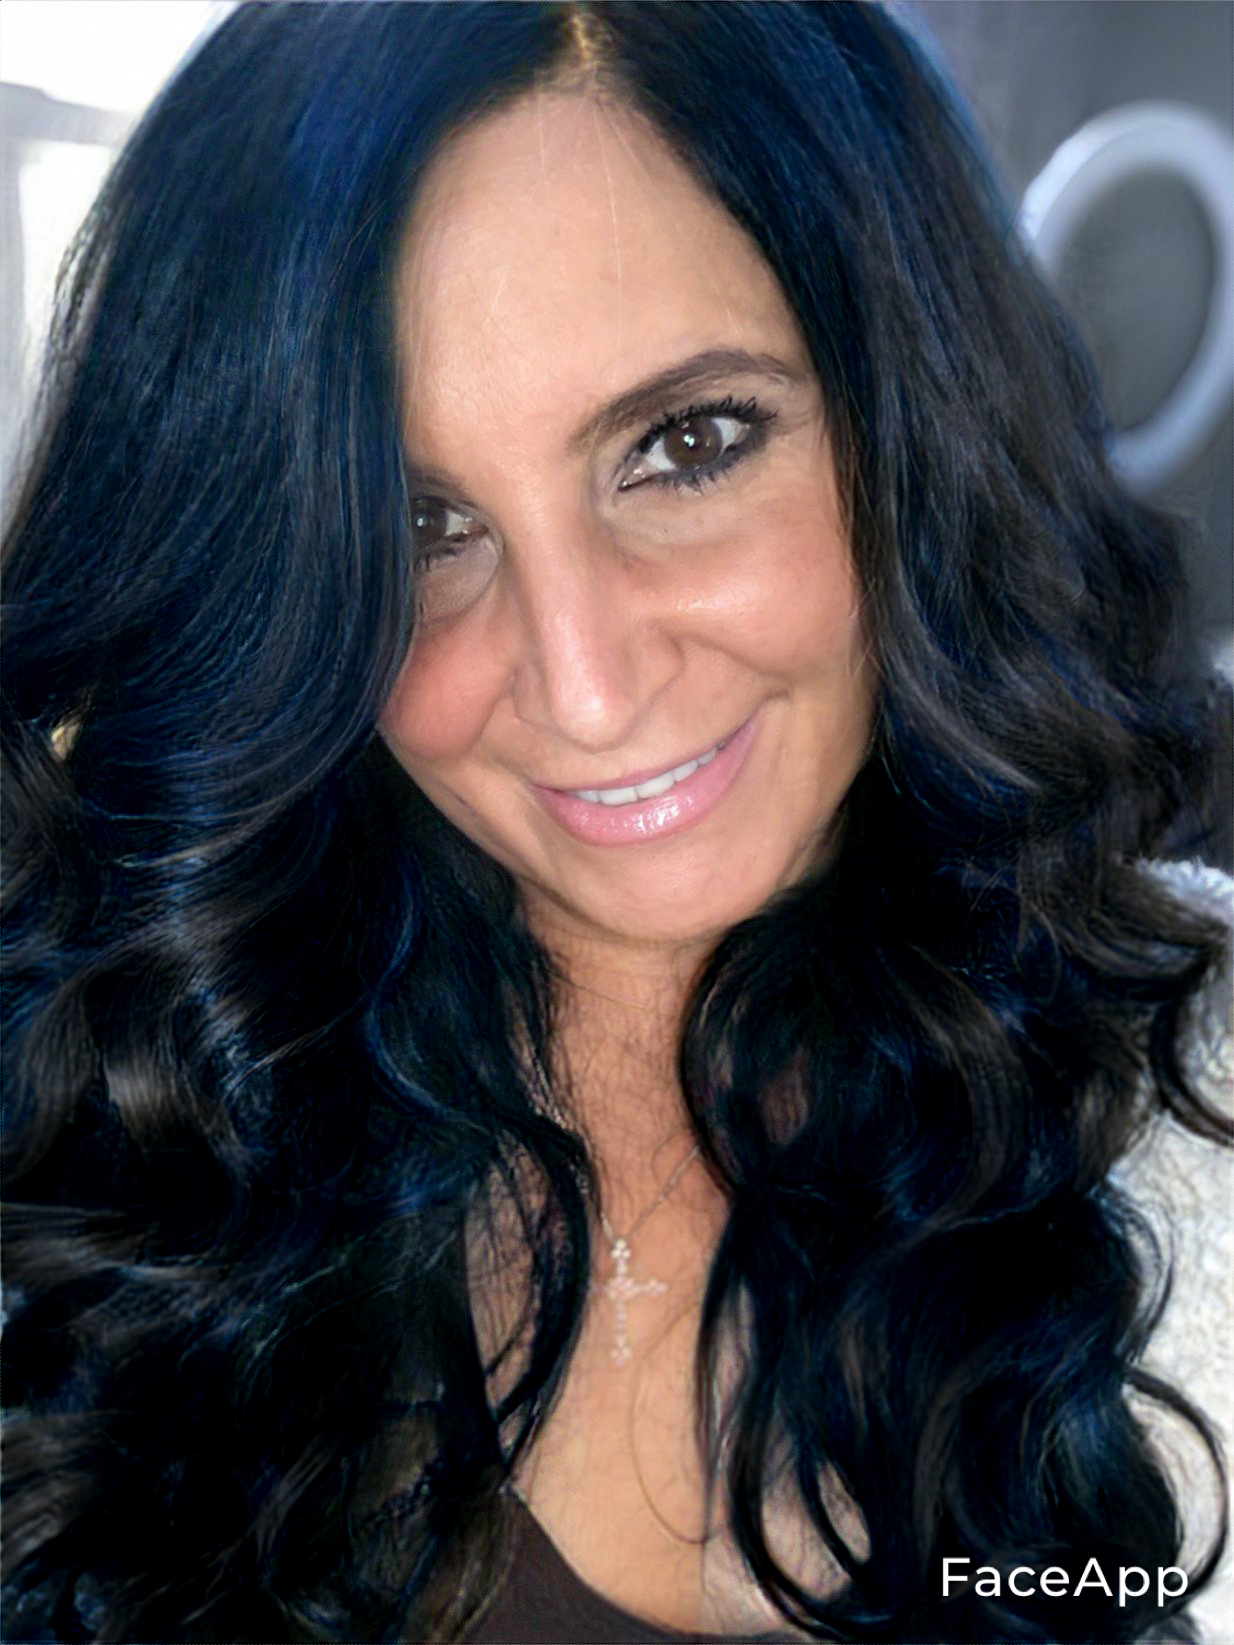 54-year-old, Single From: West Islip, NY, United States